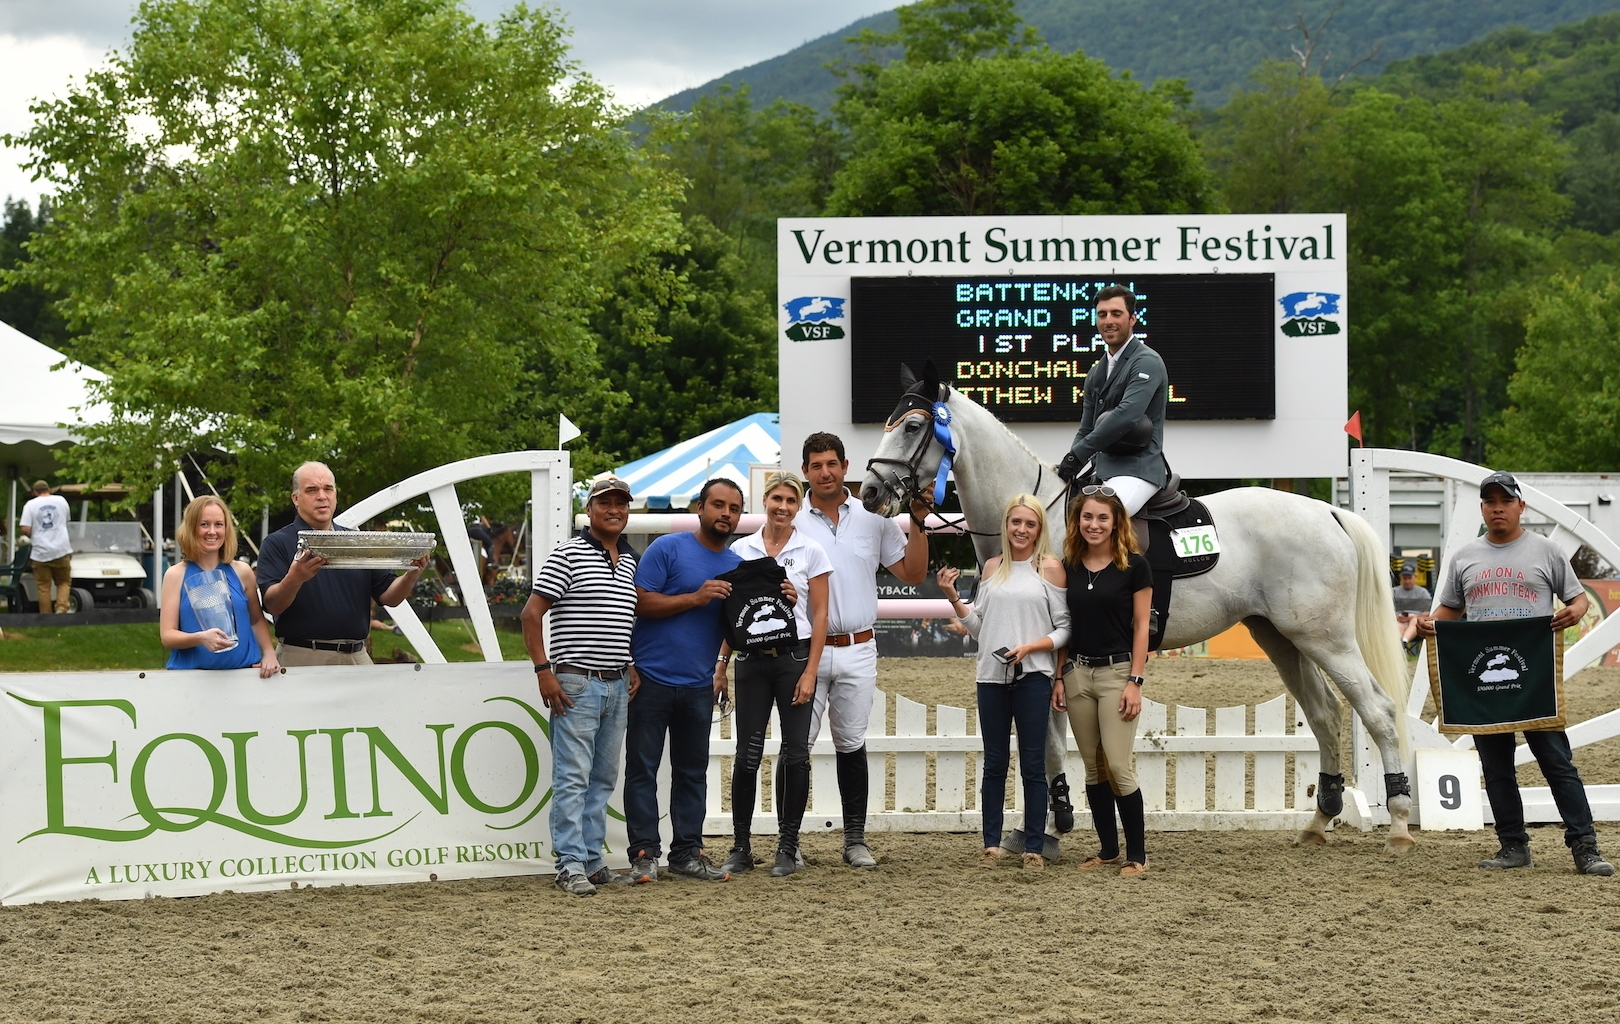 Matthew Metell and Donchalant were presented as the winners of the $30,000 Battenkill Grand Prix by Caitlin Darnall (far left) and Rodger Aberth (second from left) representing The Equinox Resort, along with members of the Wolver Hollow team at the Vermont Summer Festival on Saturday, July 15.<br><b>Photo by <a href='http://www.andrewryback.com/' target='_blank'>Andrew Ryback Photography</a></b>